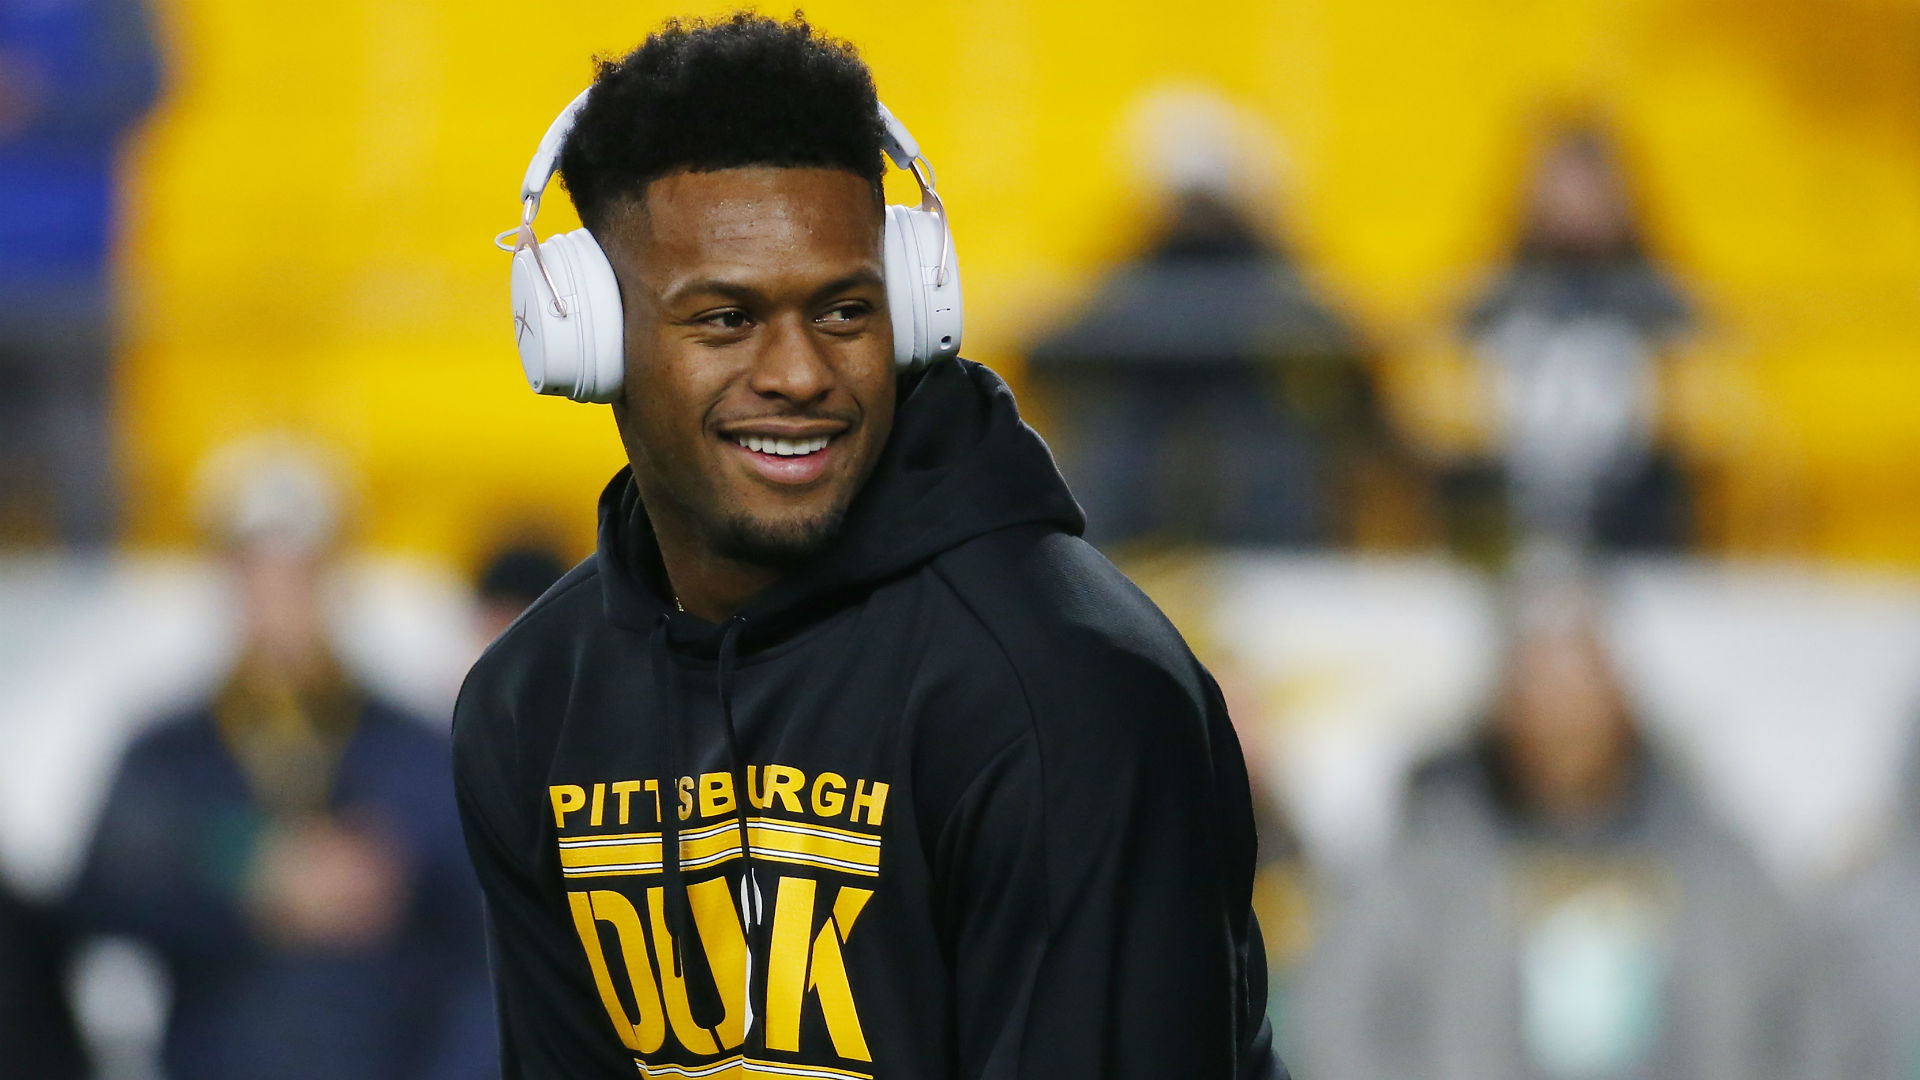 Why did JuJu Smith-Schuster decide to re-sign with the Steelers over the Ravens leaders?